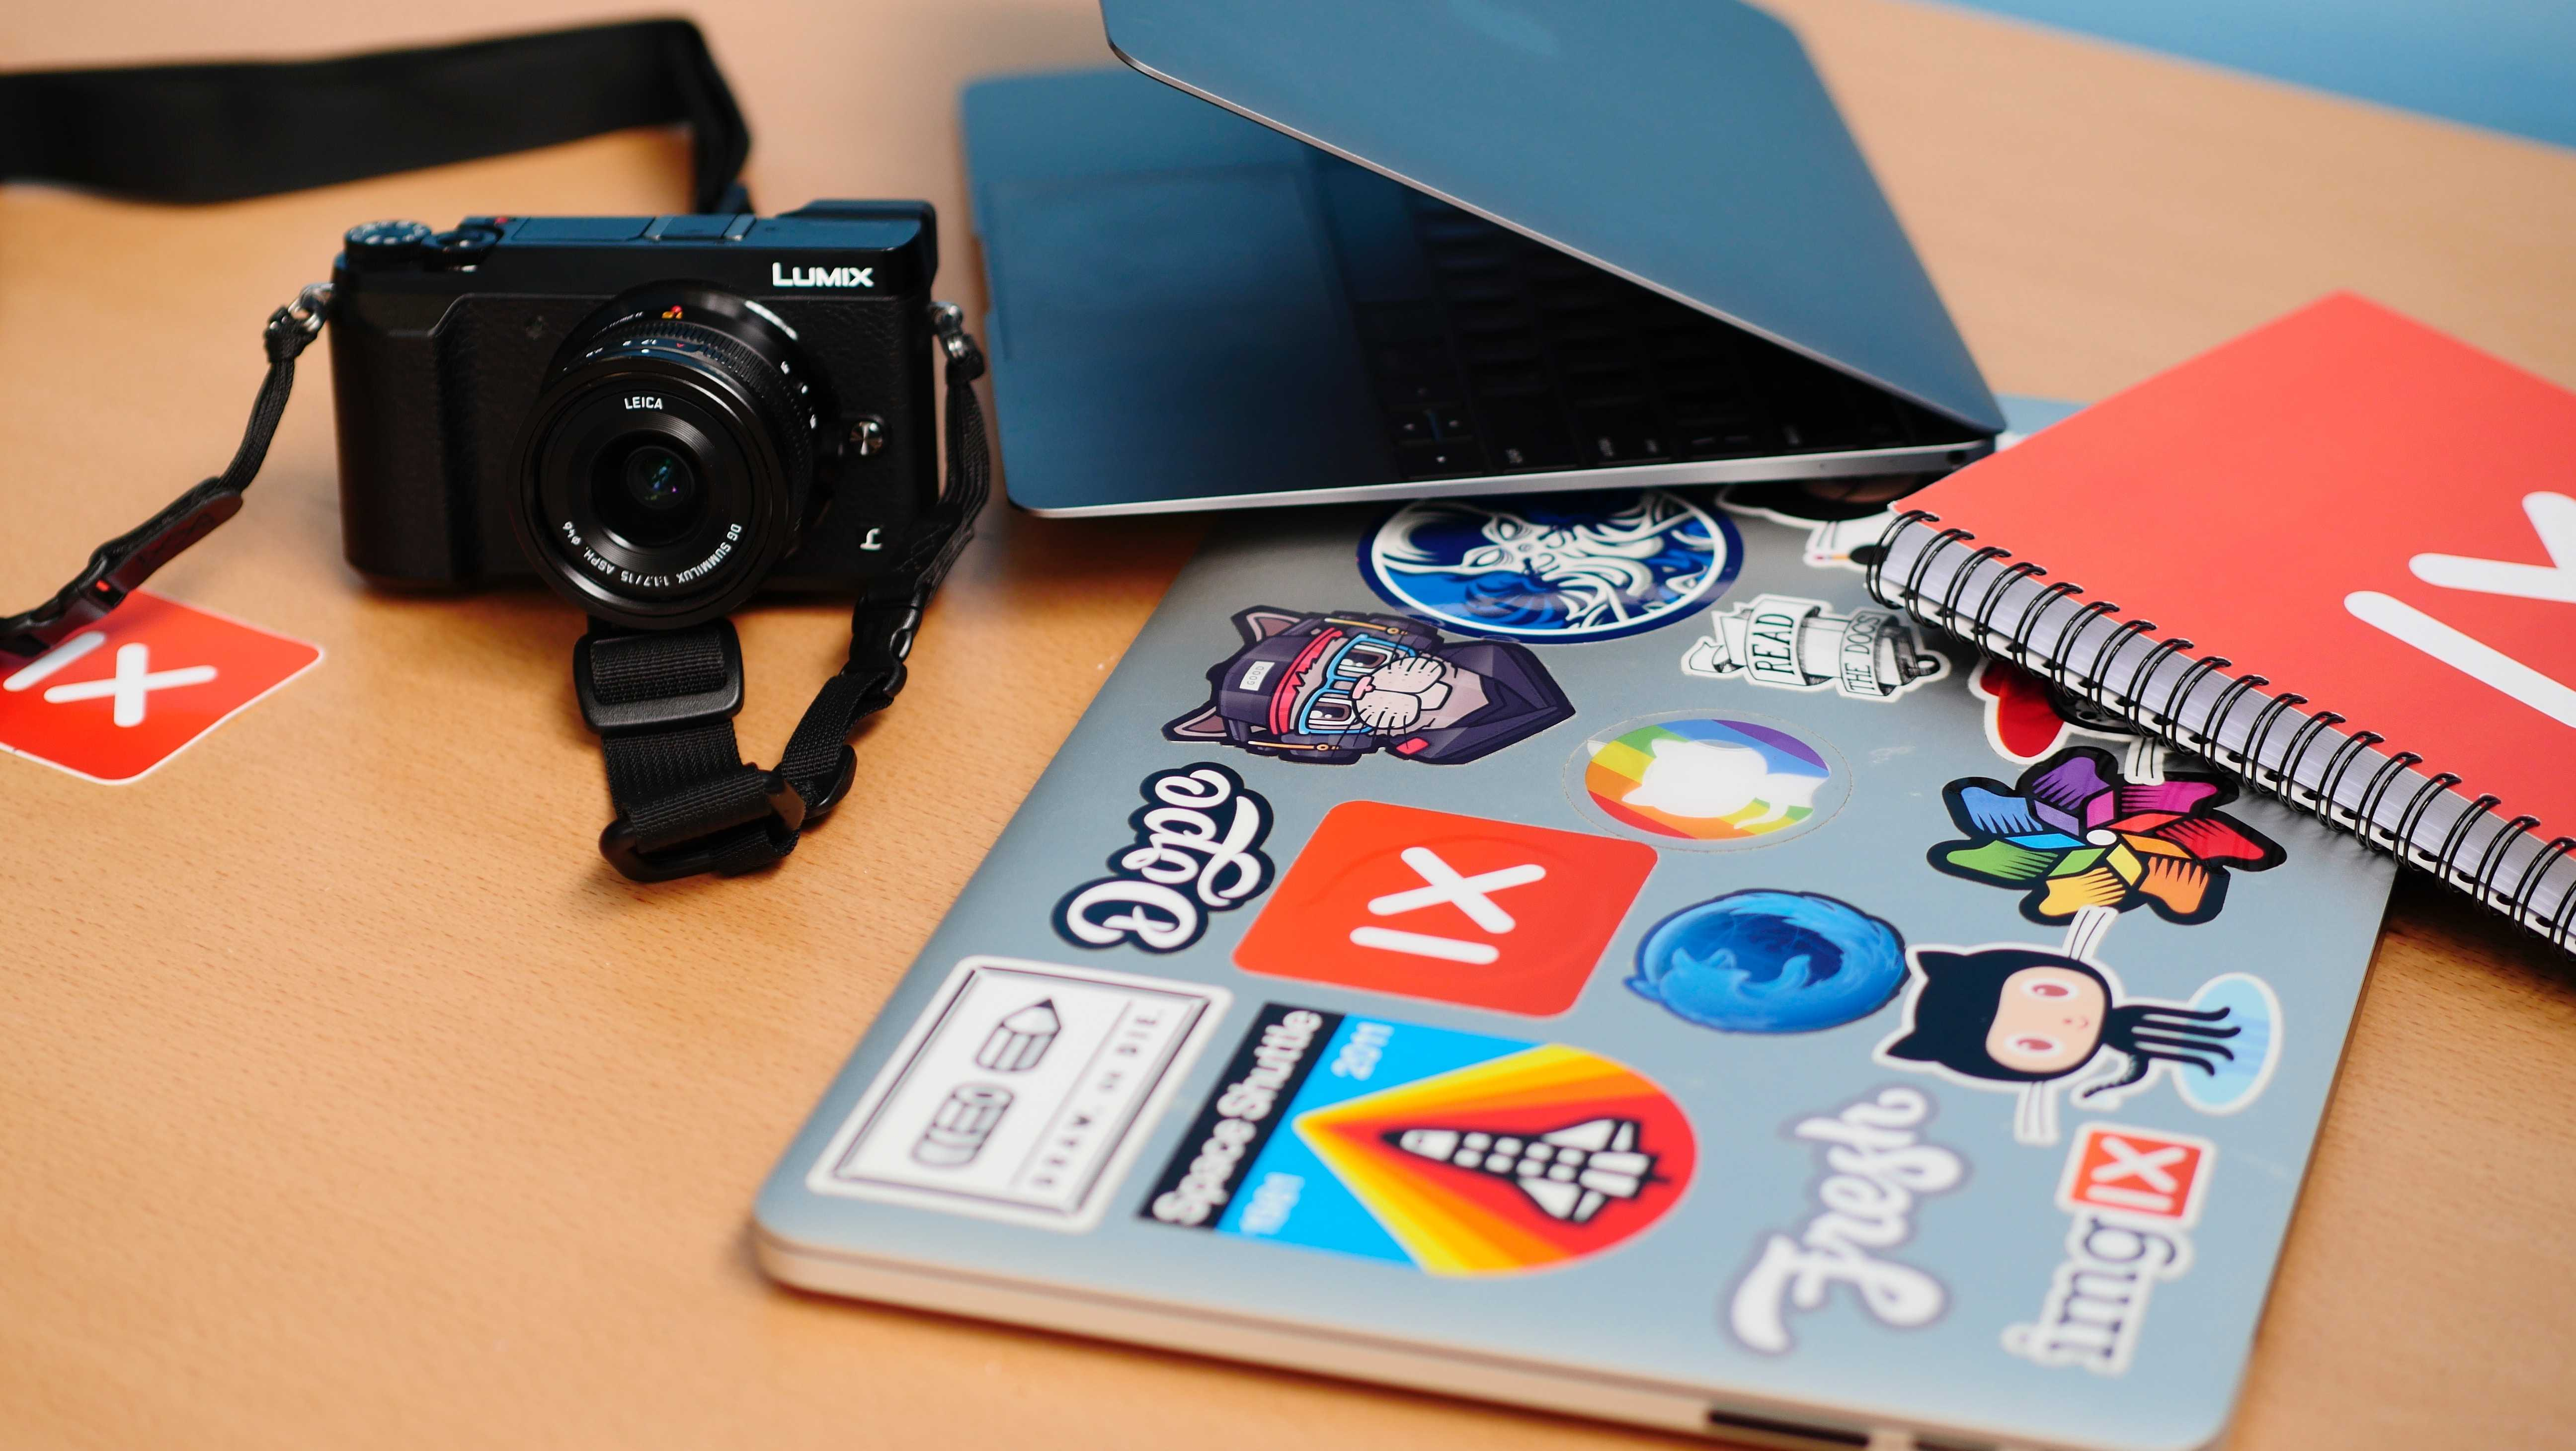 Employee appreciation can be as simple as buying cool laptop stickers for your staff!